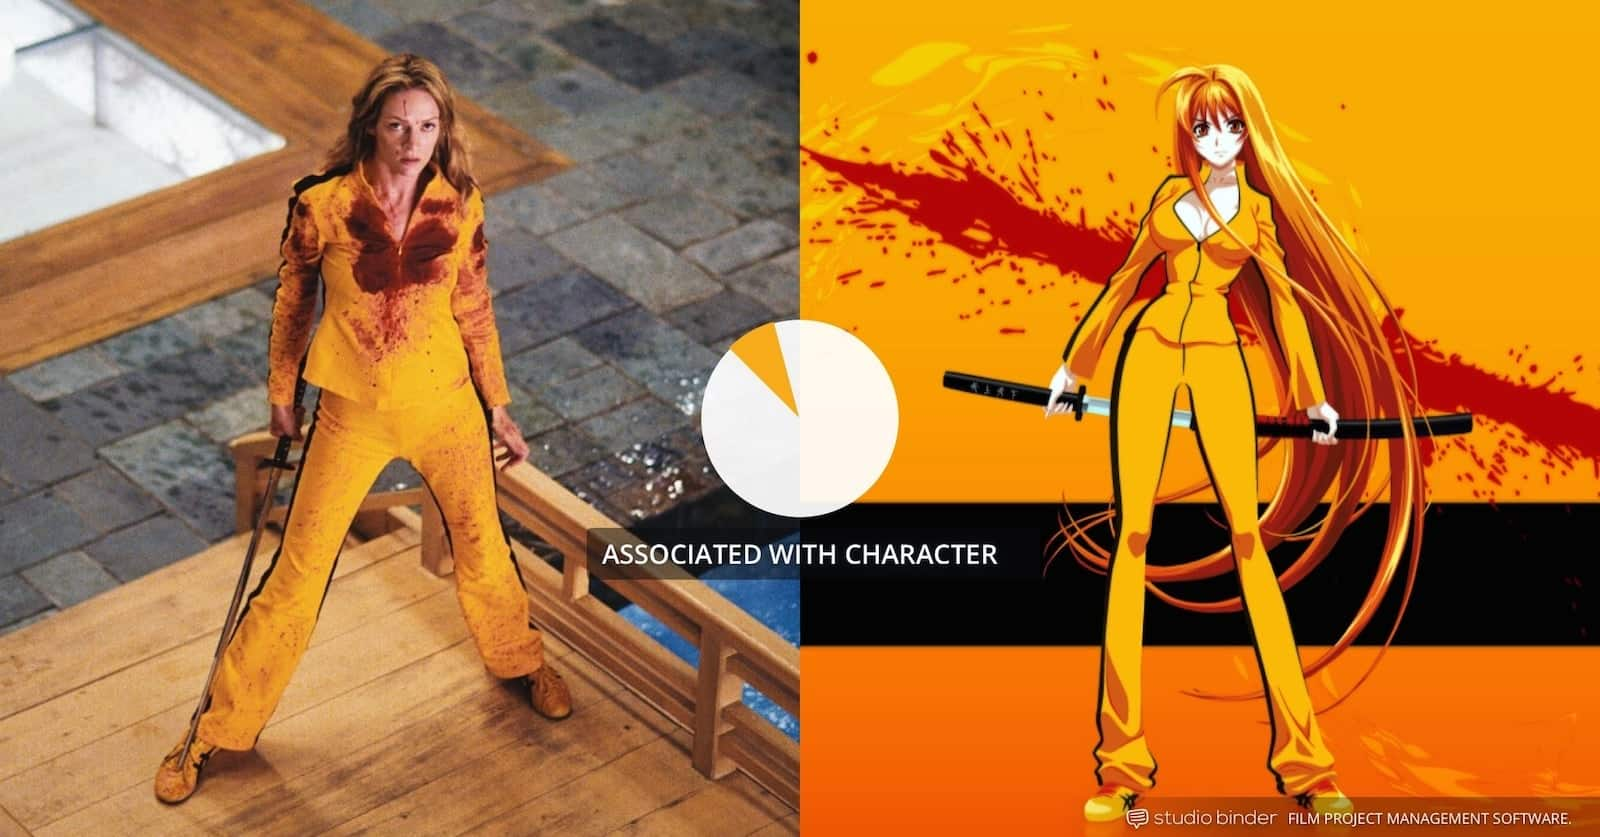 How to Use Color in Film - Movie Color Palette - Associated Colors - Kill Bill